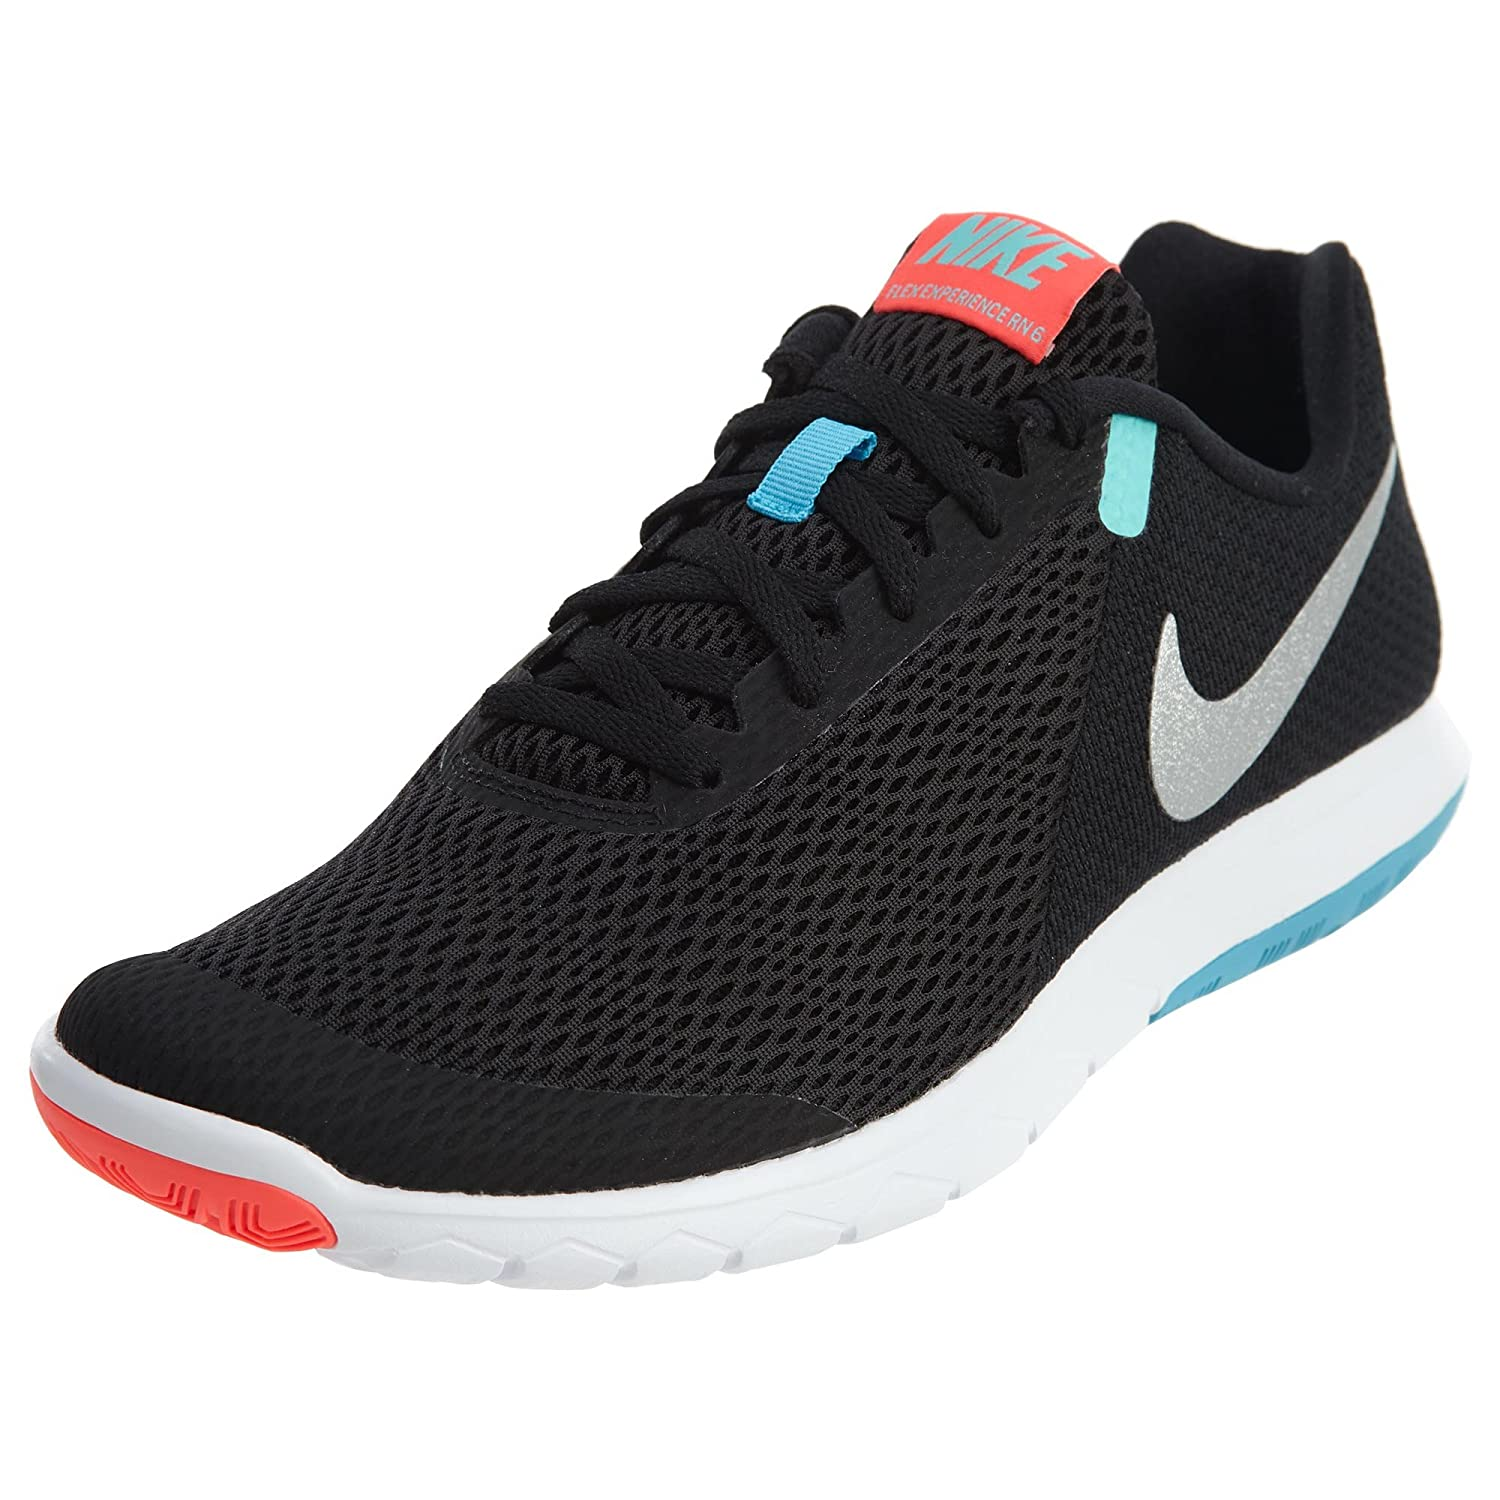 Nike Women's Multicolor Running Shoes